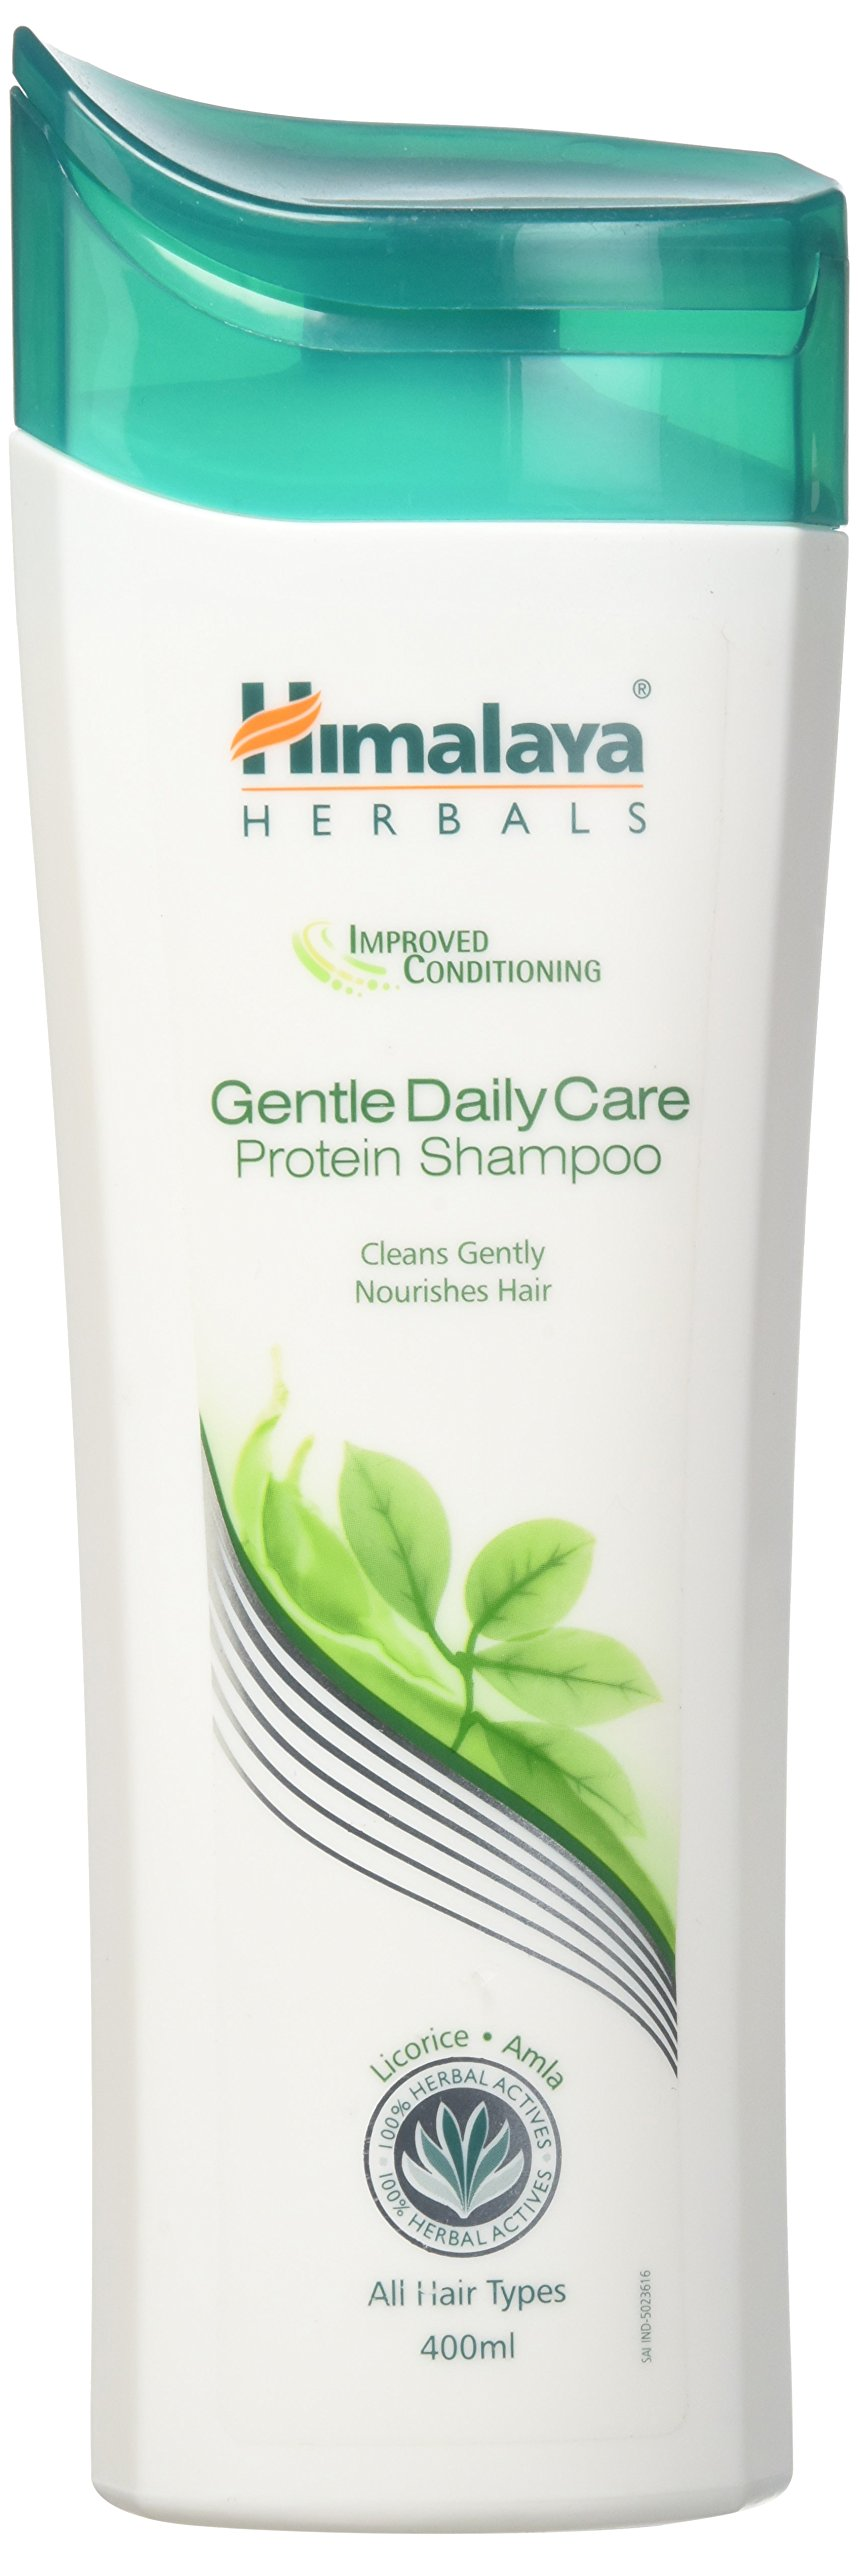 Himalaya Herbals Protein Shampoo, Gentle Daily Care, 400ml product image